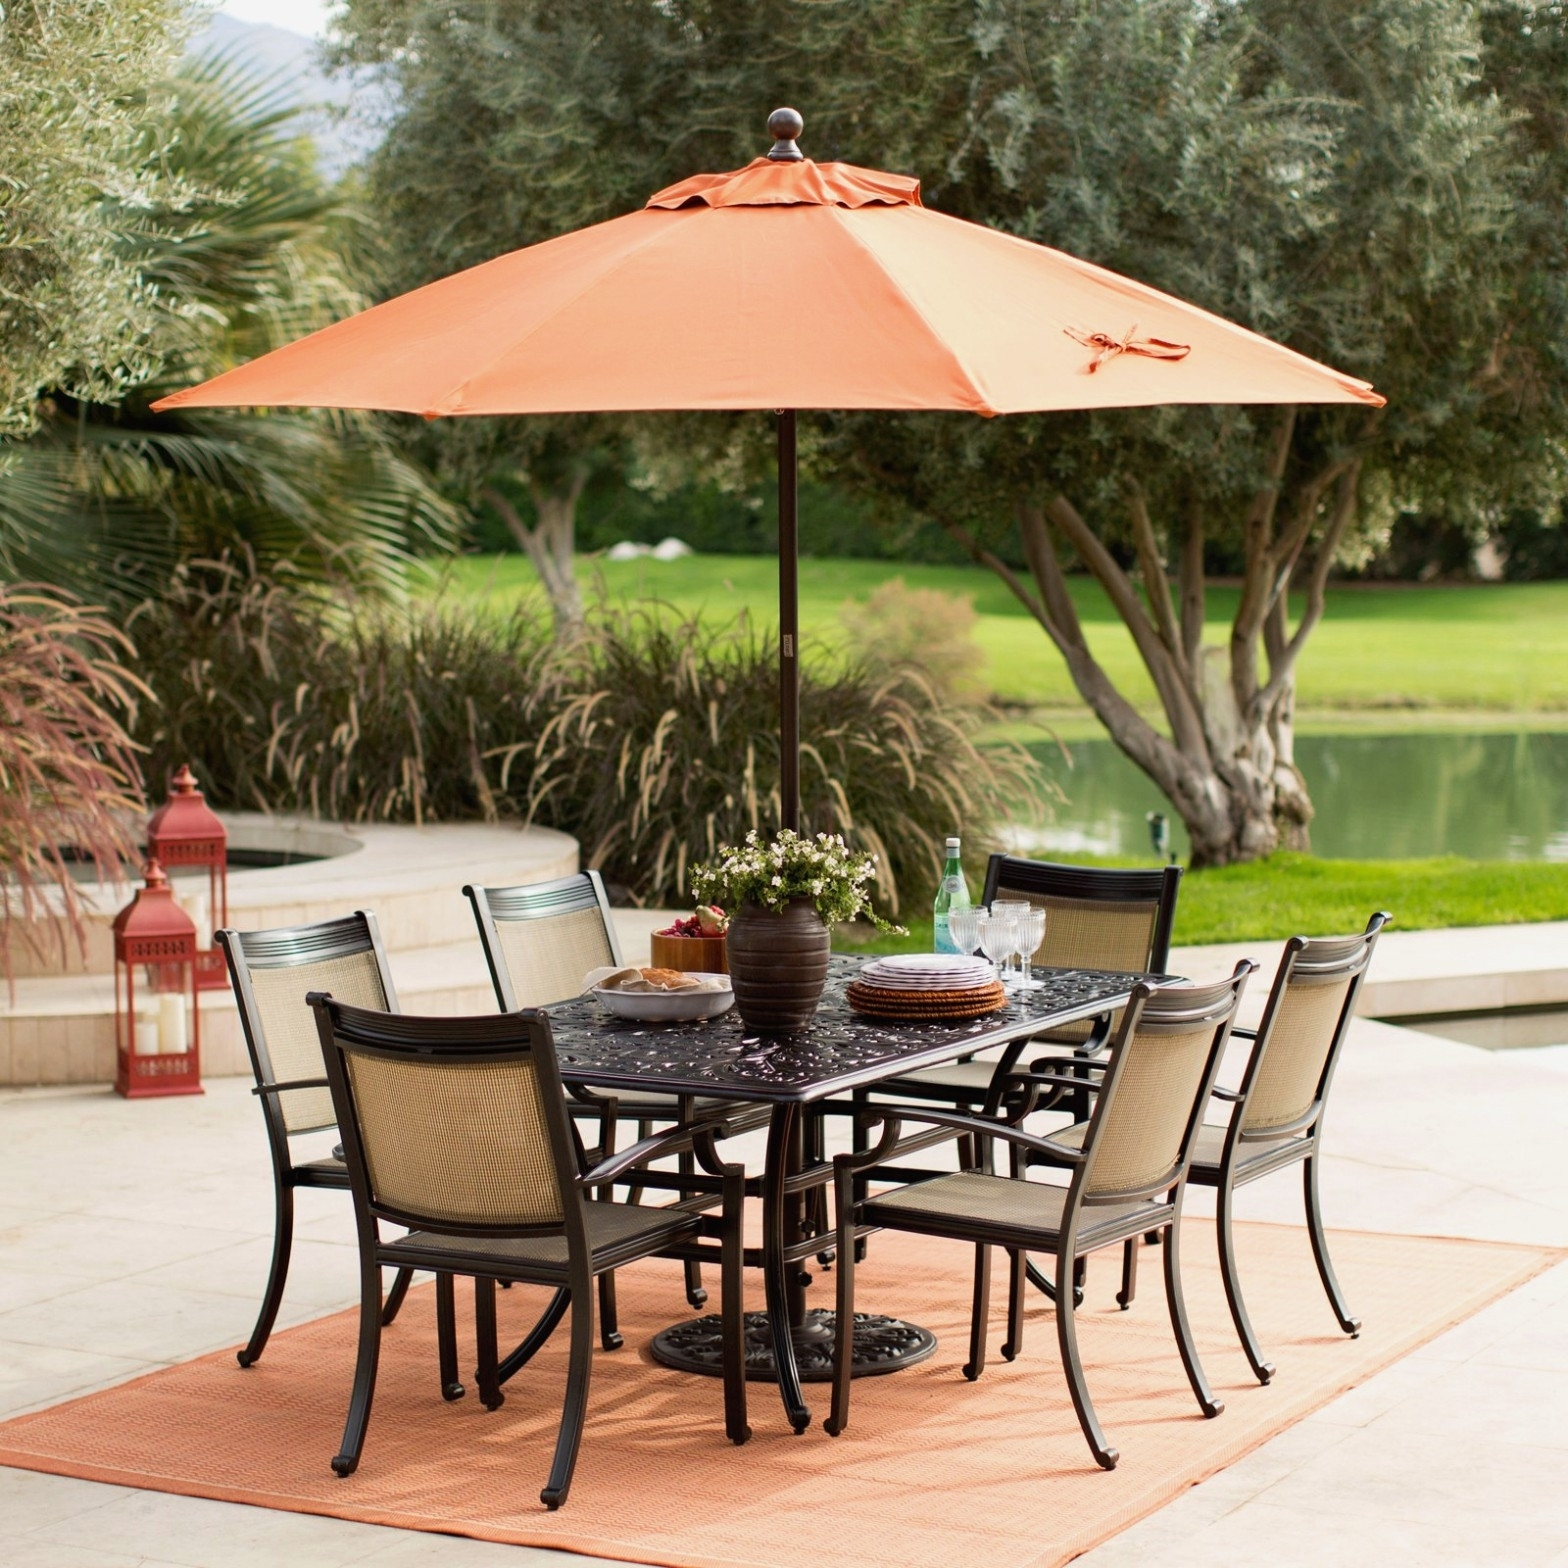 Sunbrella Patio Umbrellas On Sale Decor Color Ideas Unique – Home For Most Recently Released Sunbrella Patio Umbrella With Lights (View 17 of 20)